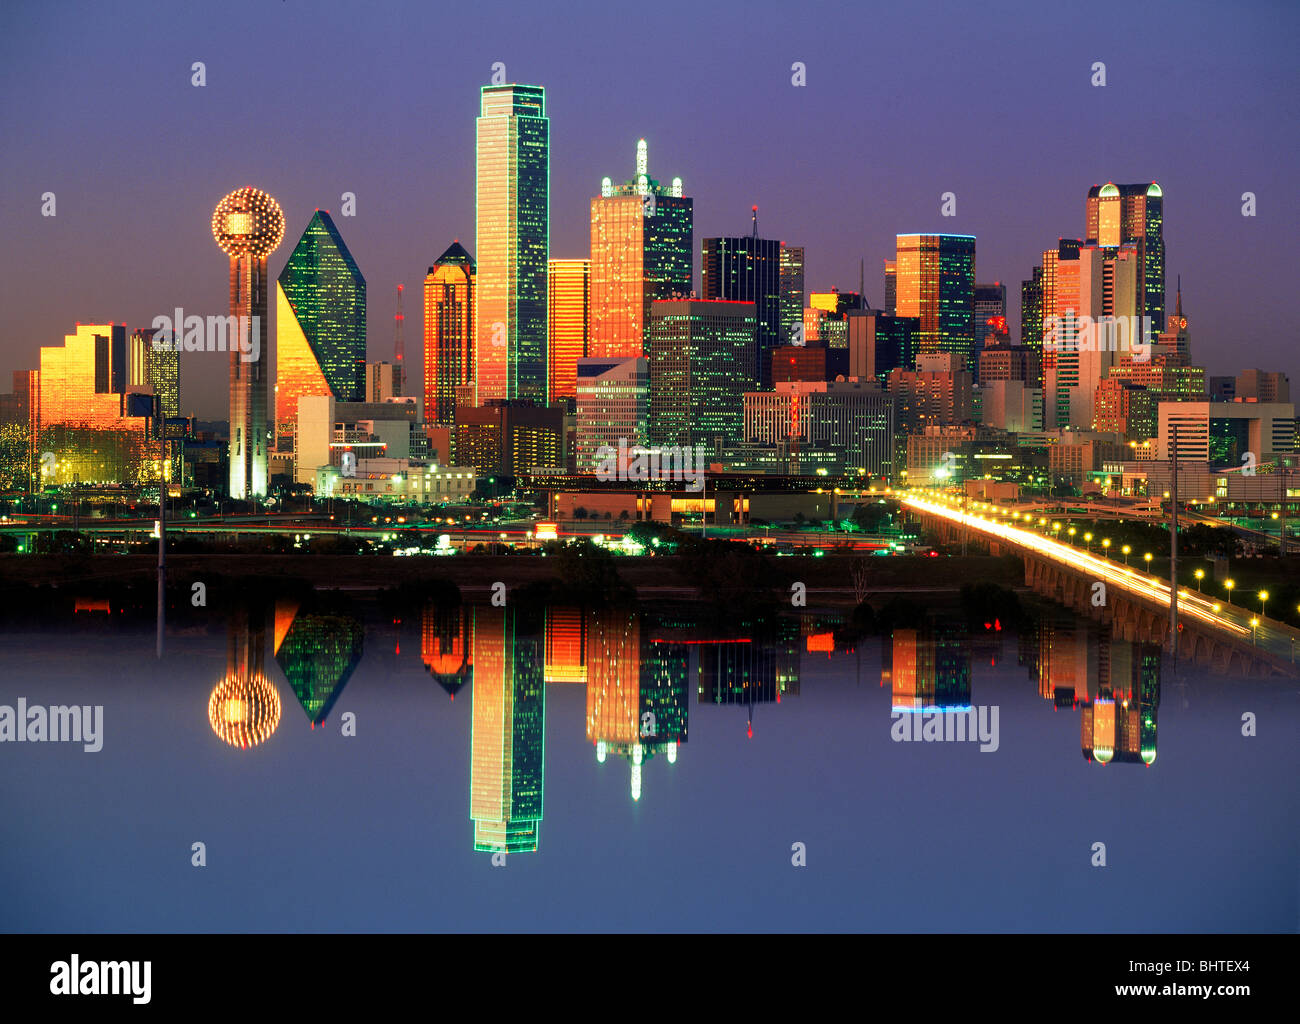 Reflections of Dallas skyline in after glow of sunset - Stock Image